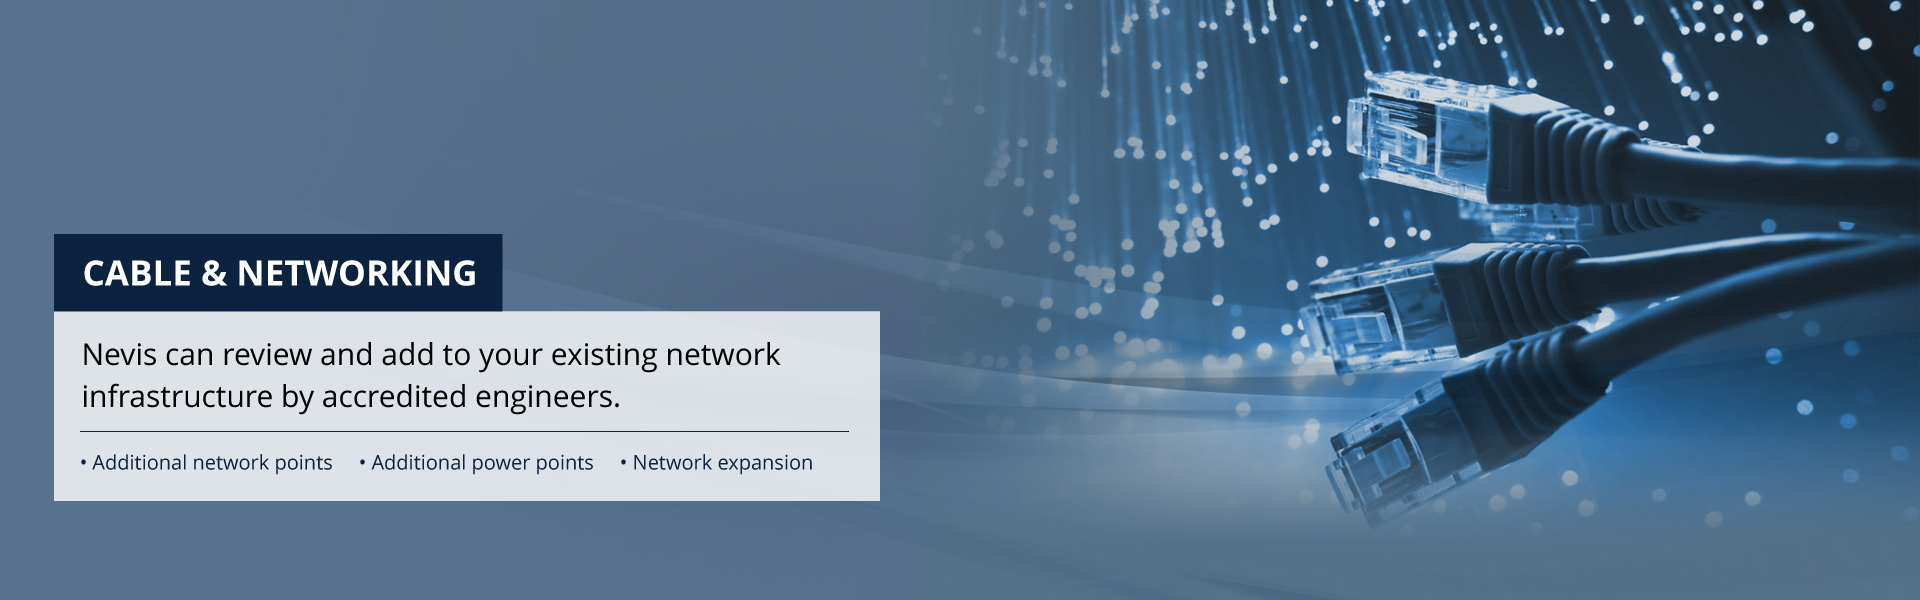 cable-and-networking-banner